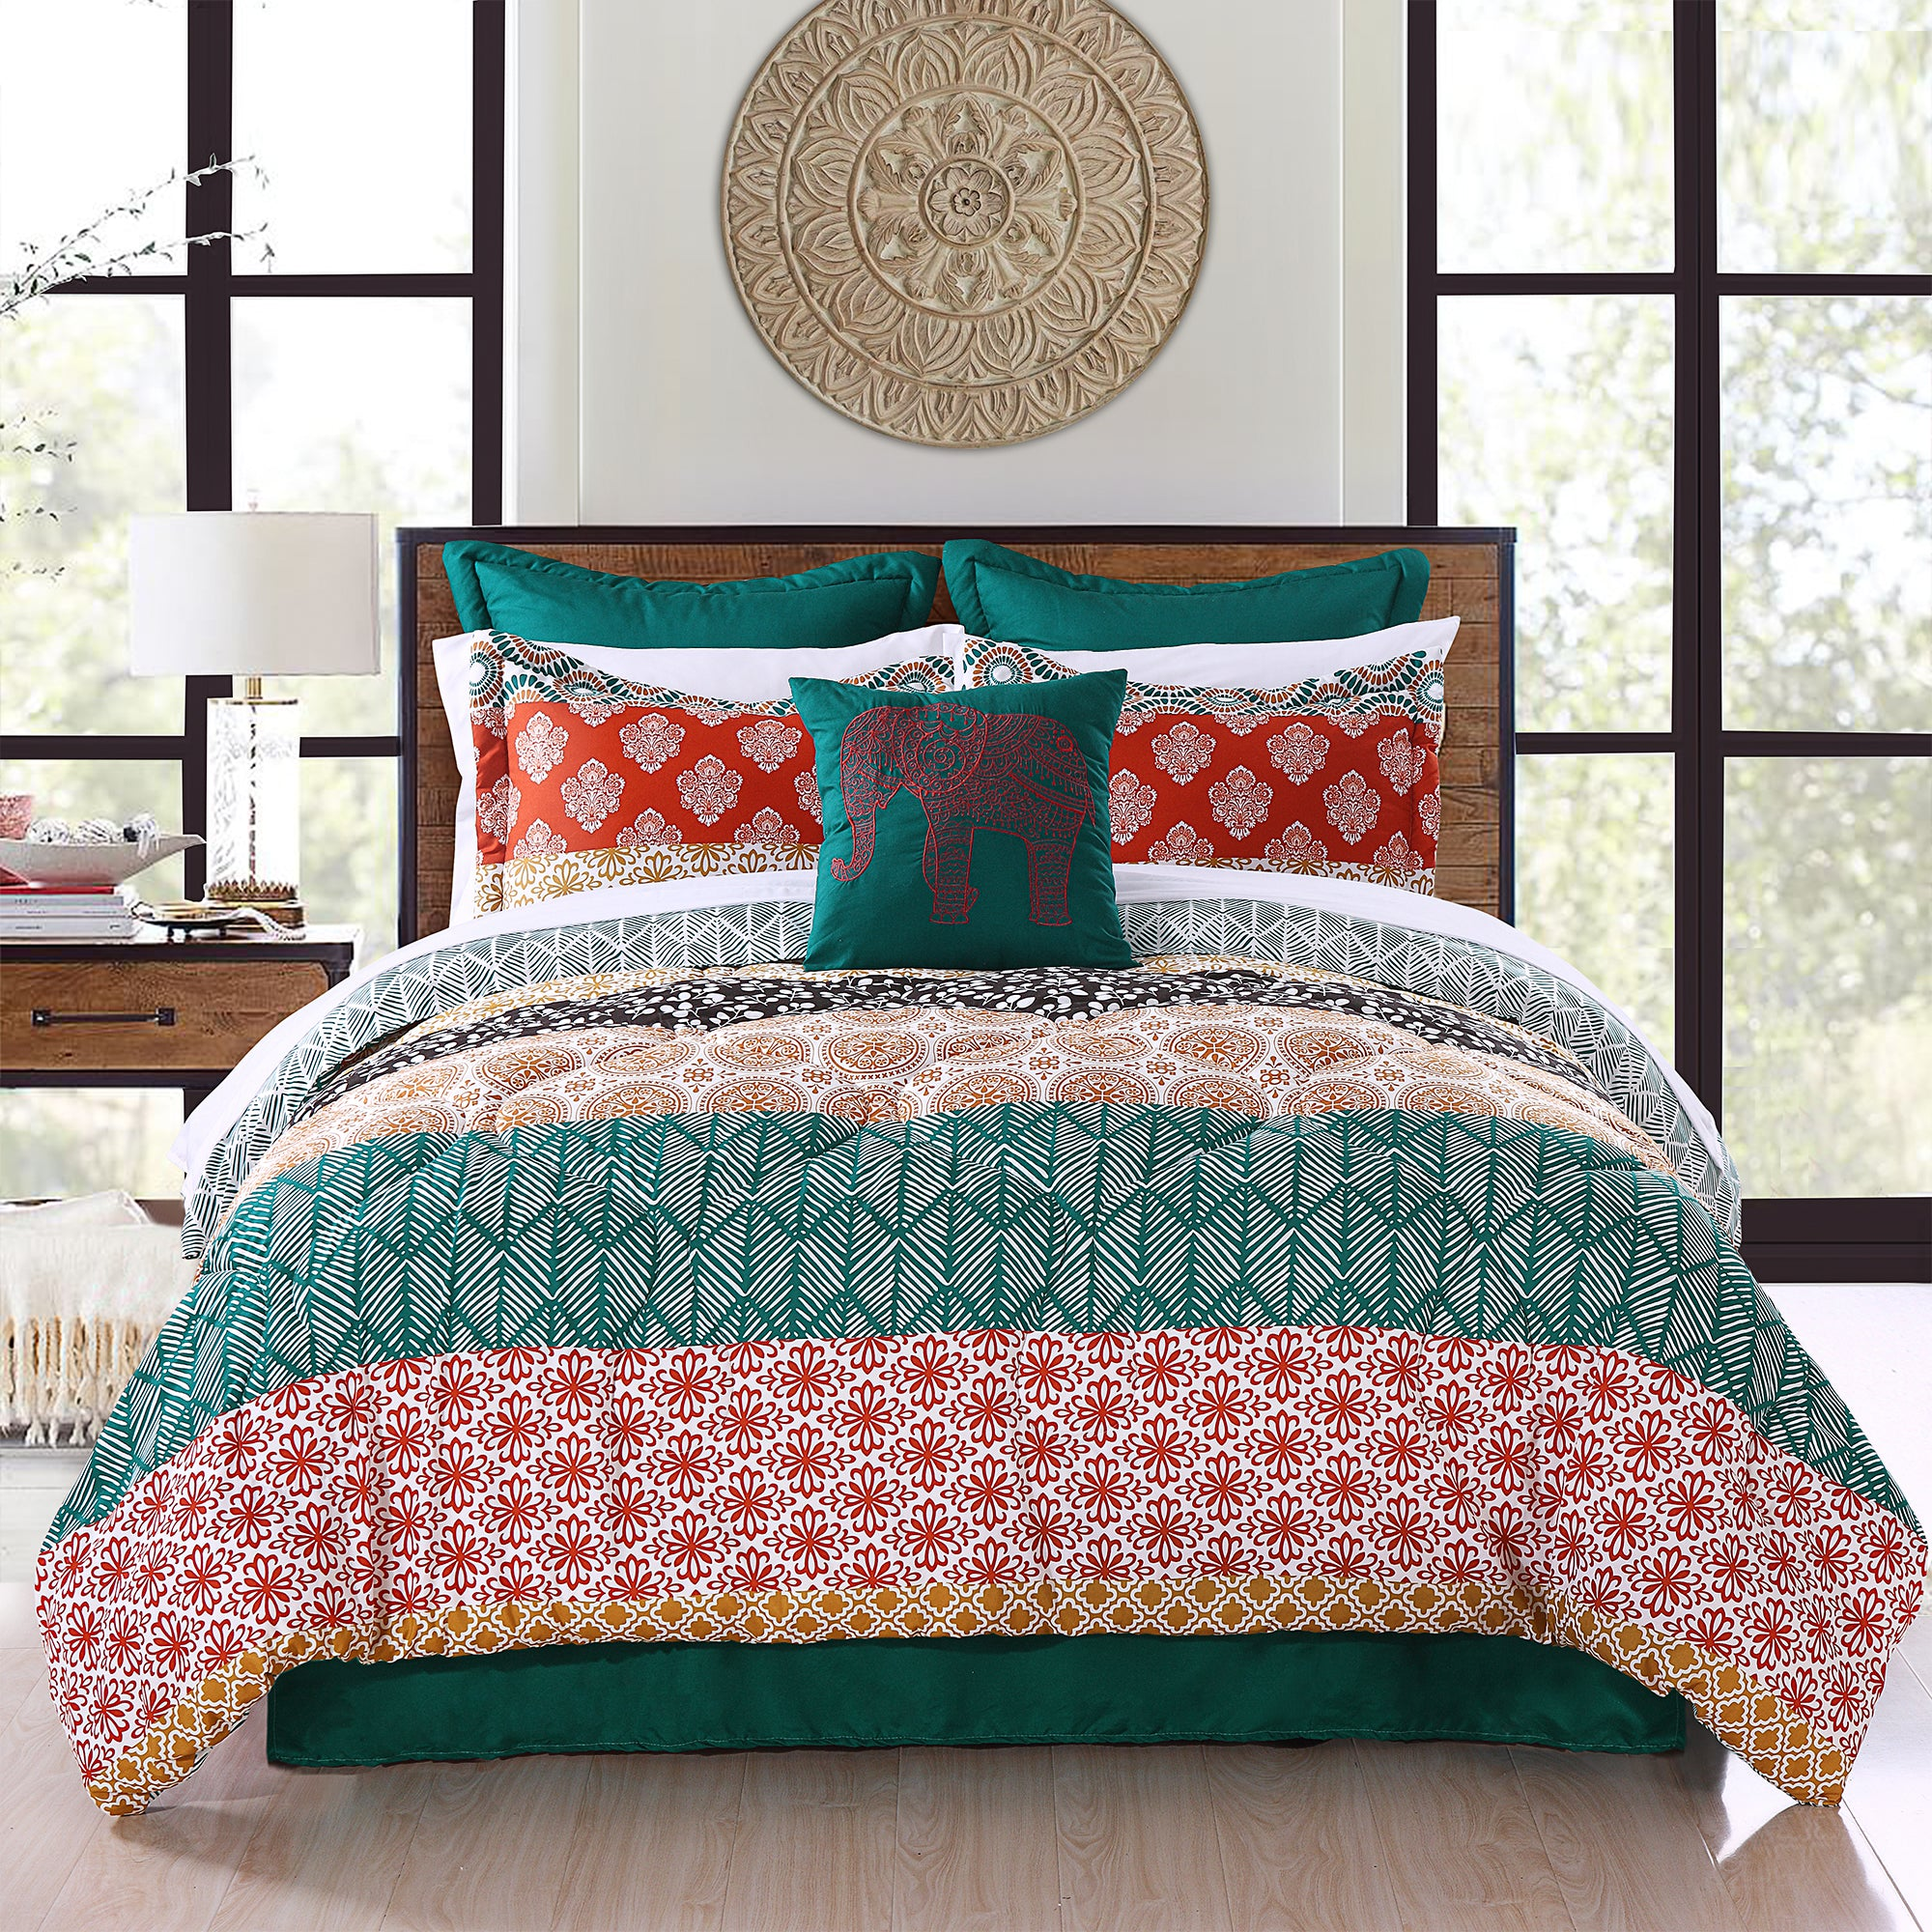 Bohemian Stripe 7 Piece Comforter Set Lush Decor Www Lushdecor Com Lushdecor